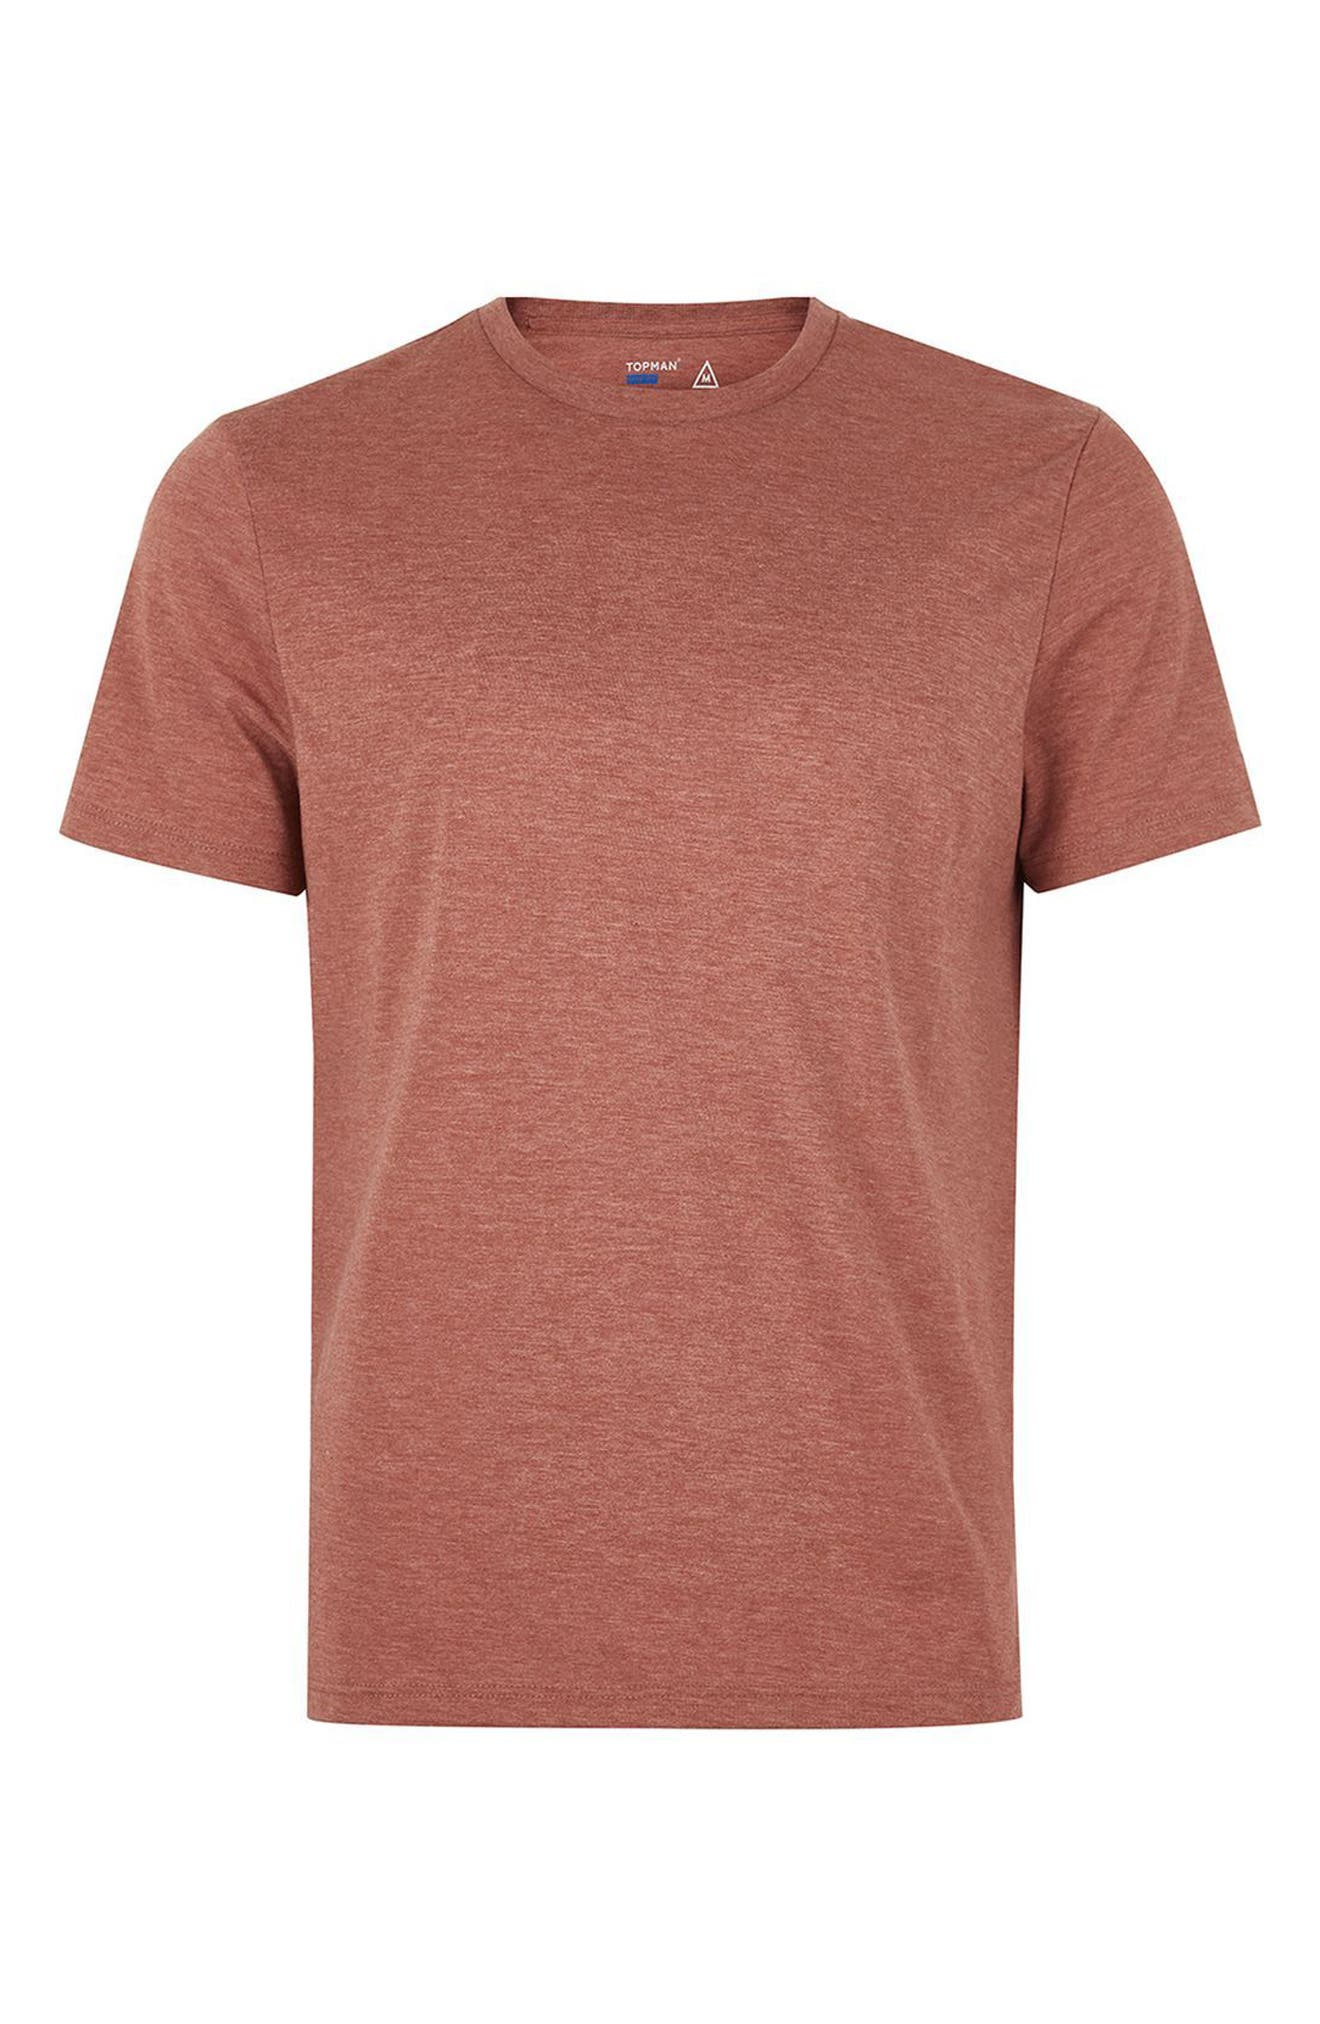 Slim Fit Crewneck T-Shirt,                             Alternate thumbnail 4, color,                             Rust Orange